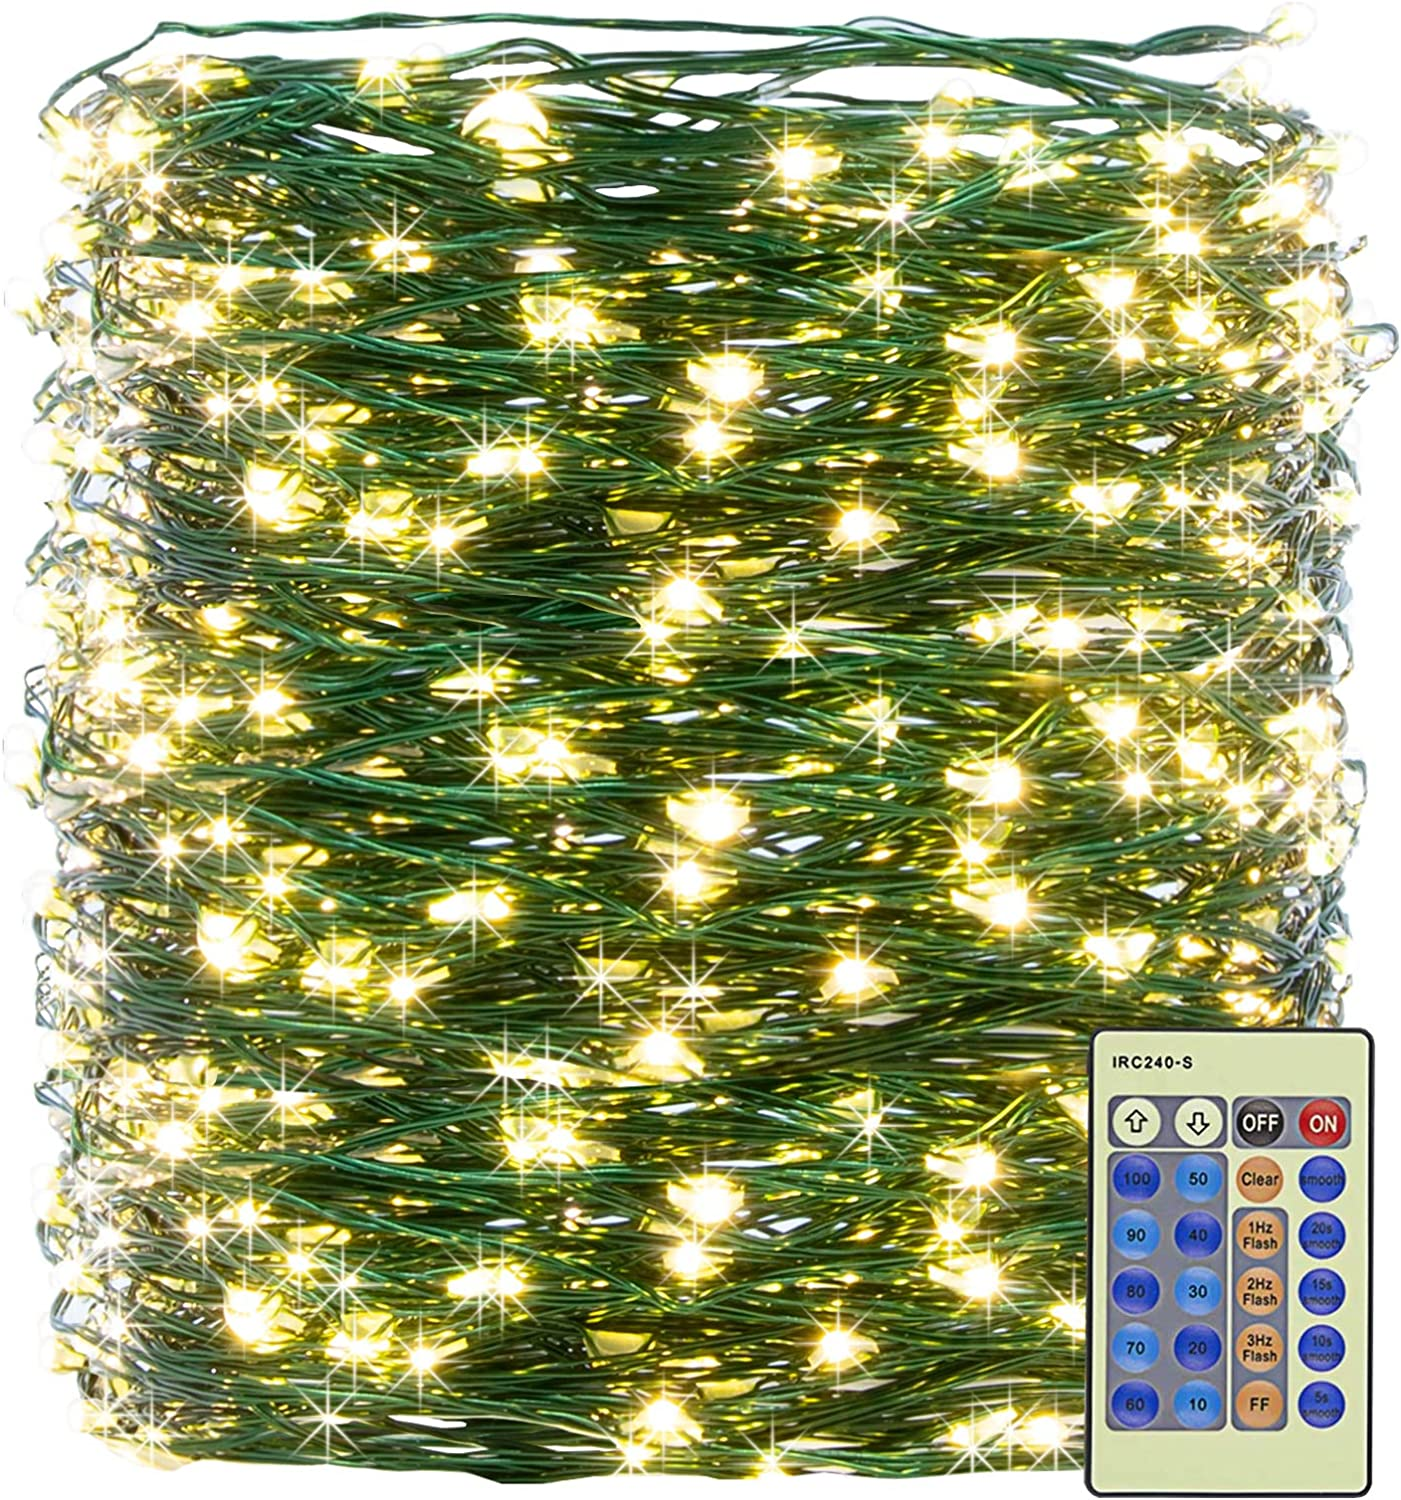 XUNXMAS 500LED Warm White Christmas String Lights 165ft Green Wire Dimmable with Remote Control, UL Certified Waterproof Fairy Lights for DIY Bedroom Patio Party Christmas Tree Indoor Outdoor Decor